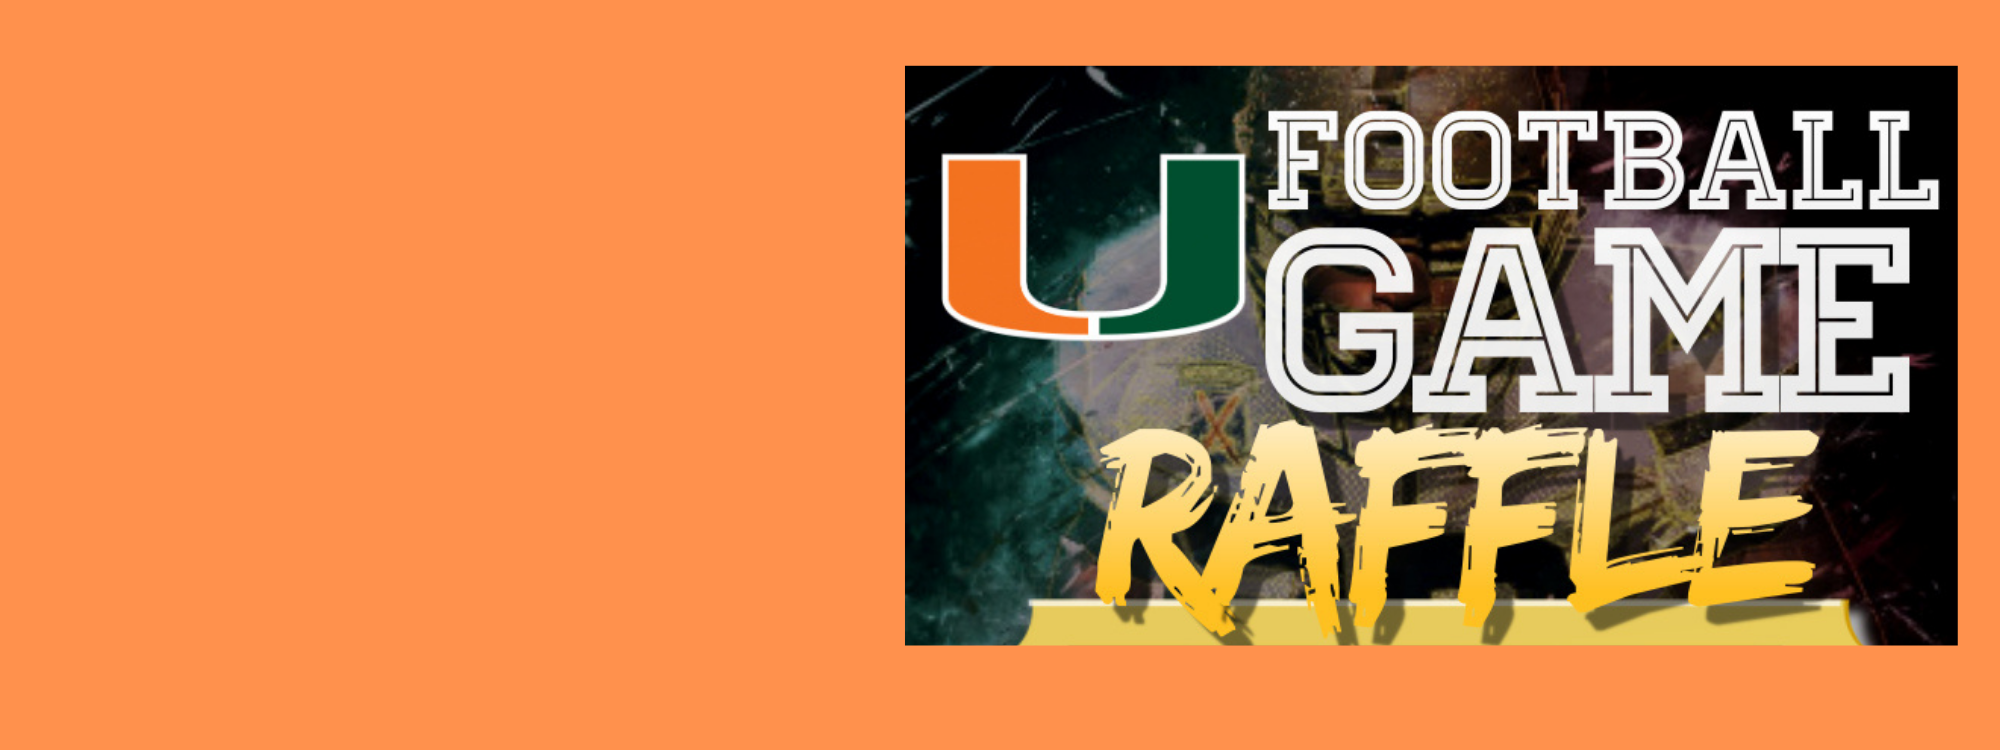 """<a href=""""https://www.templebethemet.org/form/UMraffle""""                                     target=""""_blank"""">                                                                 <span class=""""slider_title"""">                                     UM Football Game Raffle                                </span>                                                                 </a>                                                                                                                                                                                       <span class=""""slider_description"""">Enter to win 4 club seat tickets and premier parking at Hard Rock Stadium. We are raffling off 6 UM home games. Enter today!</span>                                                                                     <a href=""""https://www.templebethemet.org/form/UMraffle"""" class=""""slider_link""""                             target=""""_blank"""">                             Learn More                            </a>"""